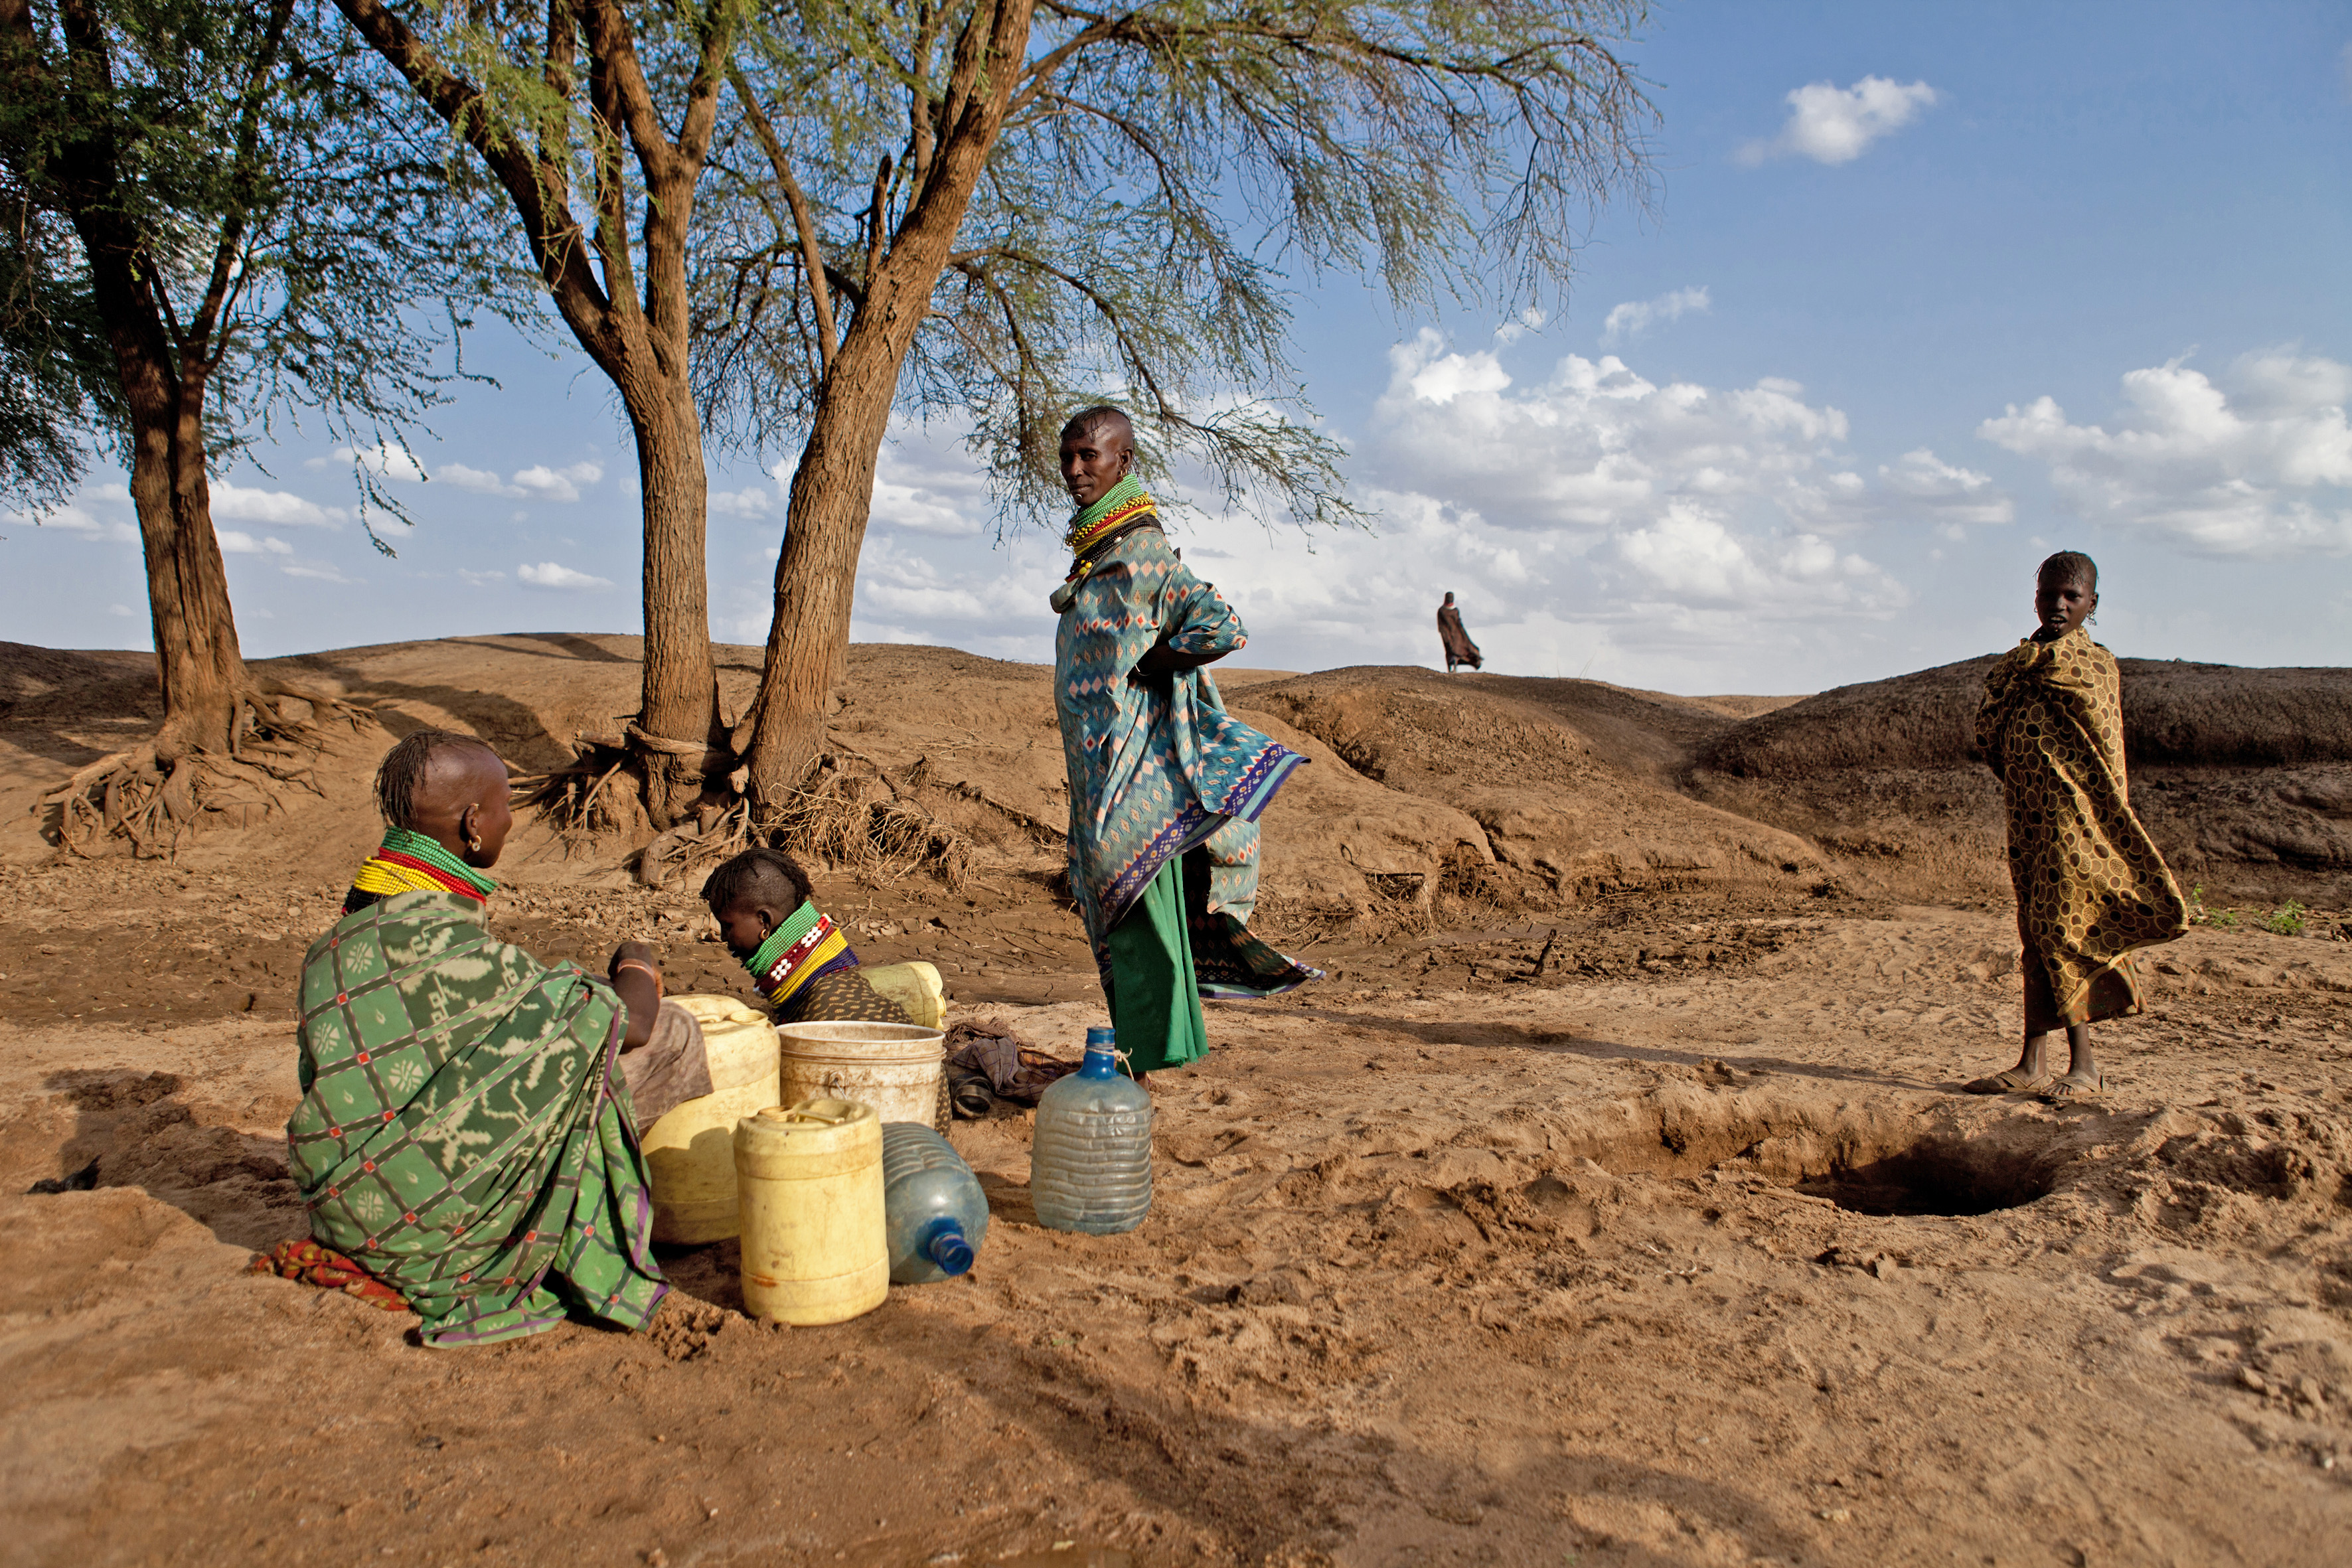 Turkana women dig for water on a dry river bed in northern Kenya